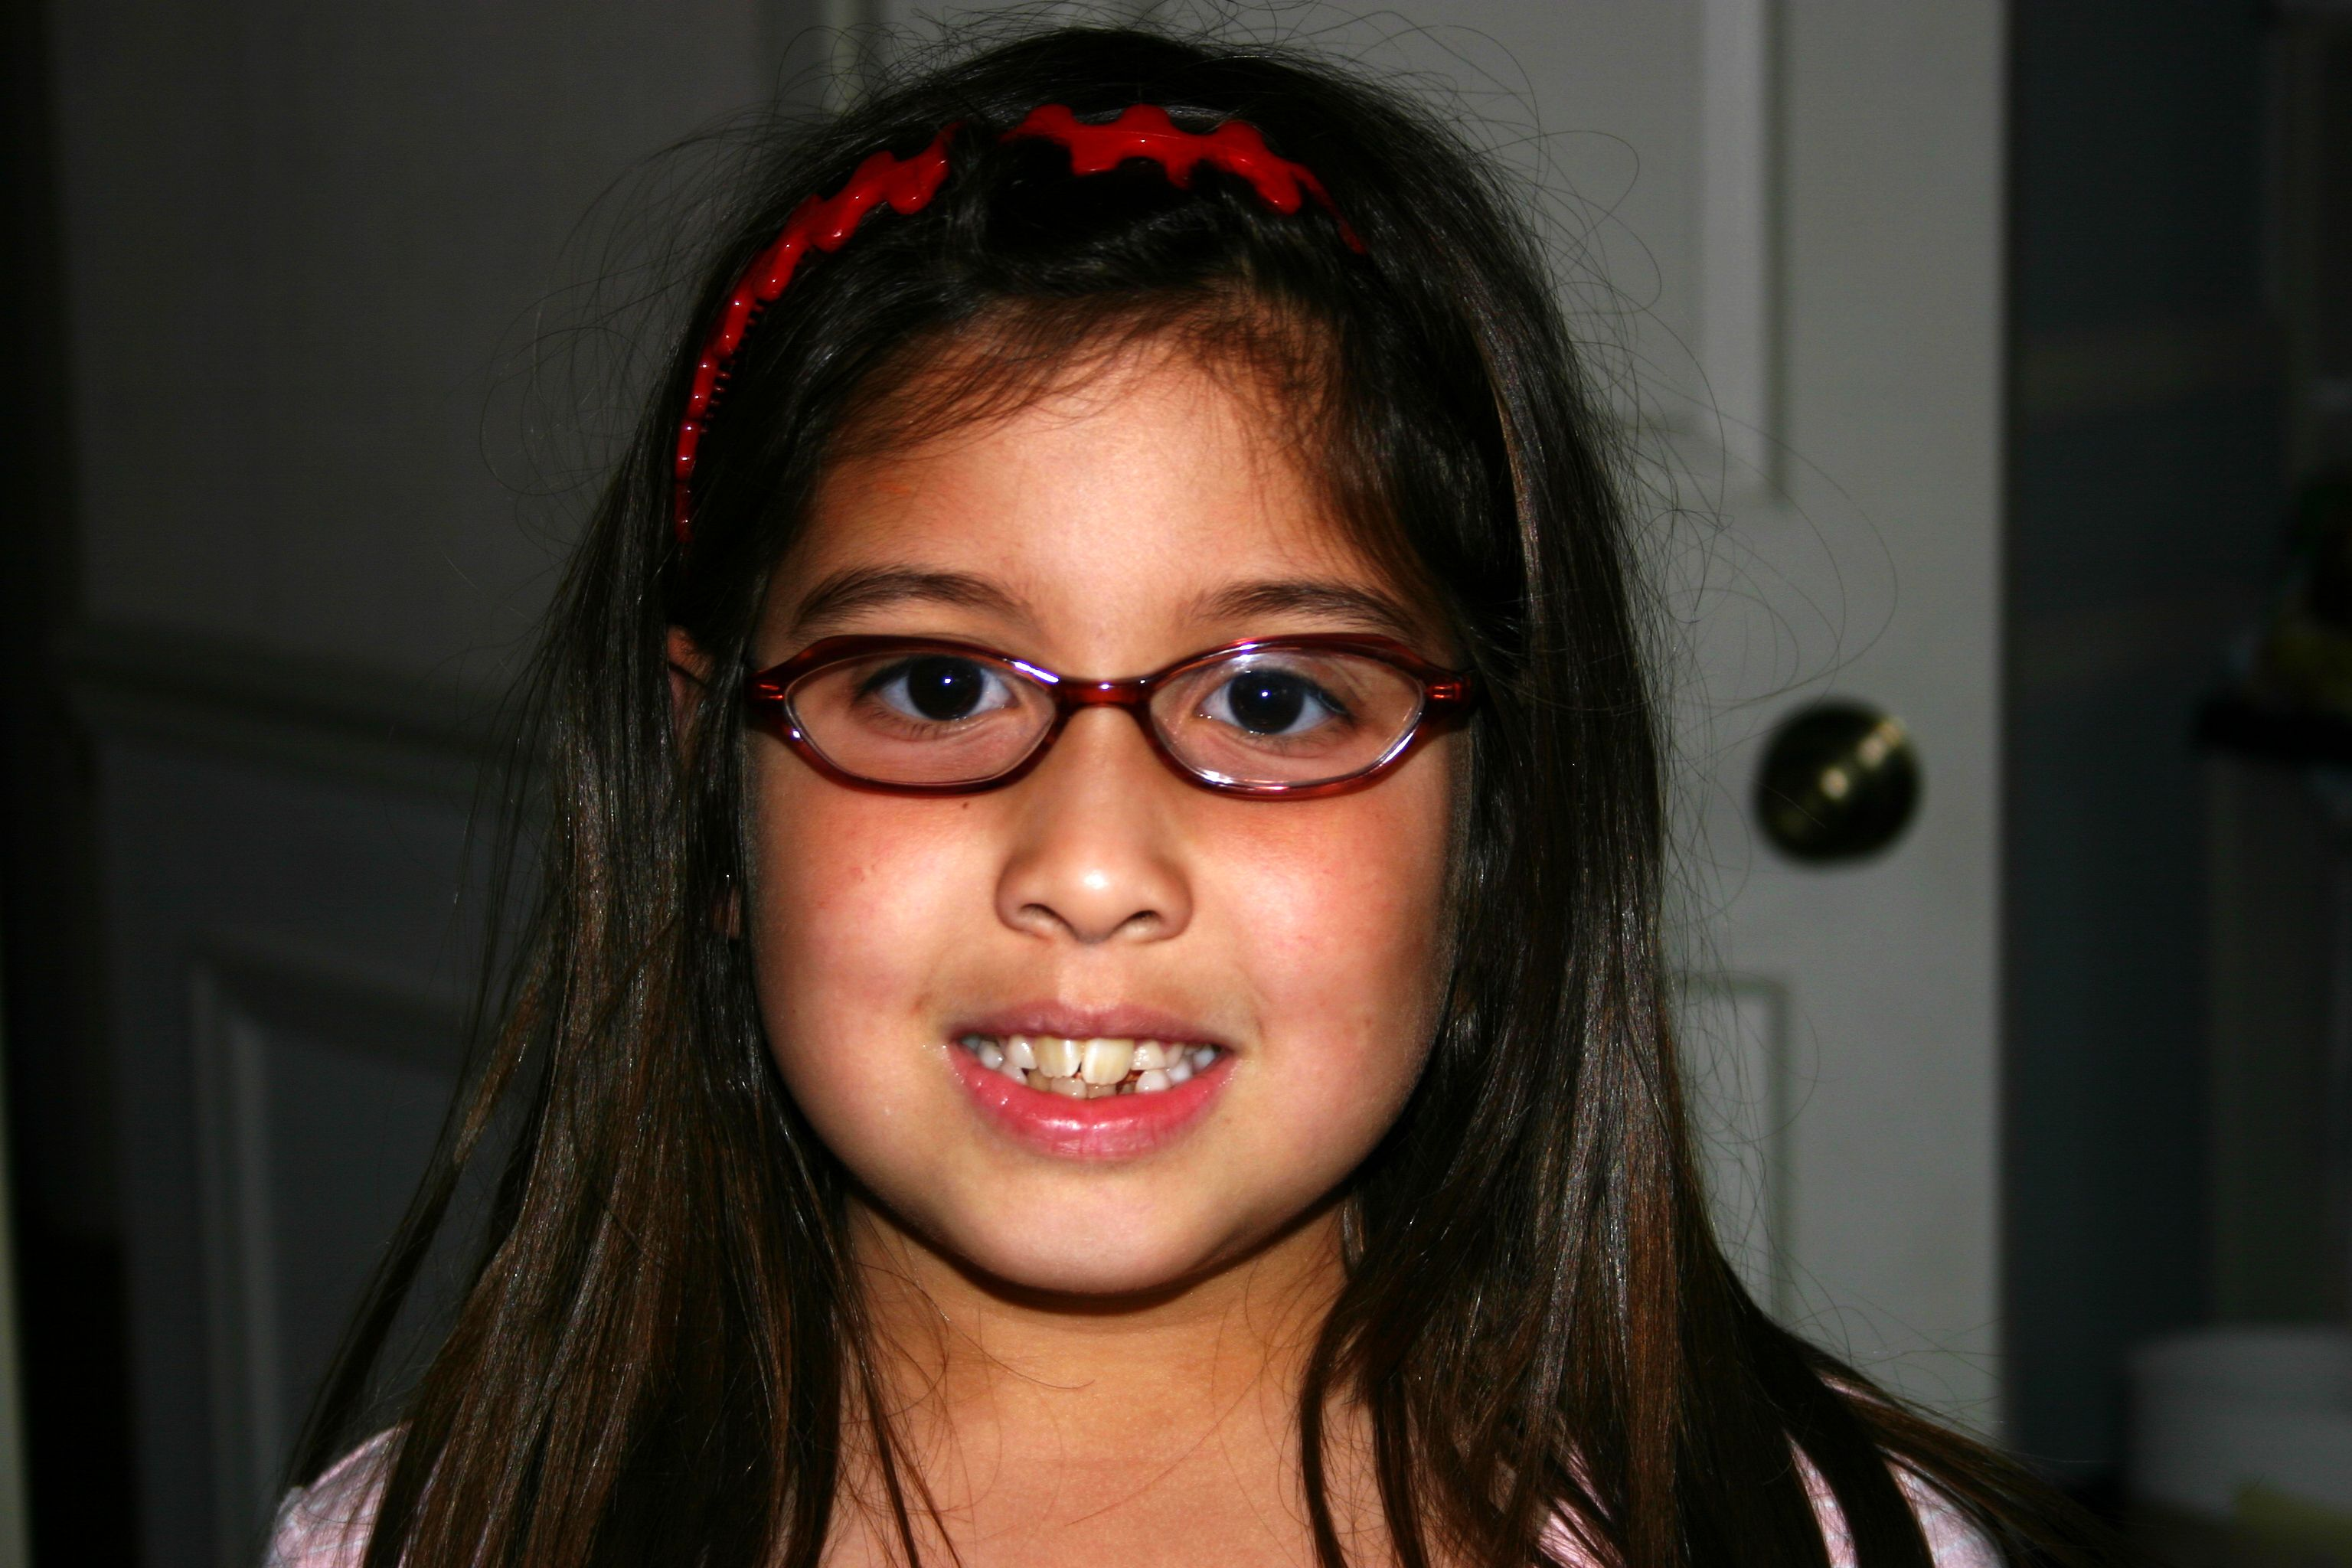 Facial With Braces And Glasses